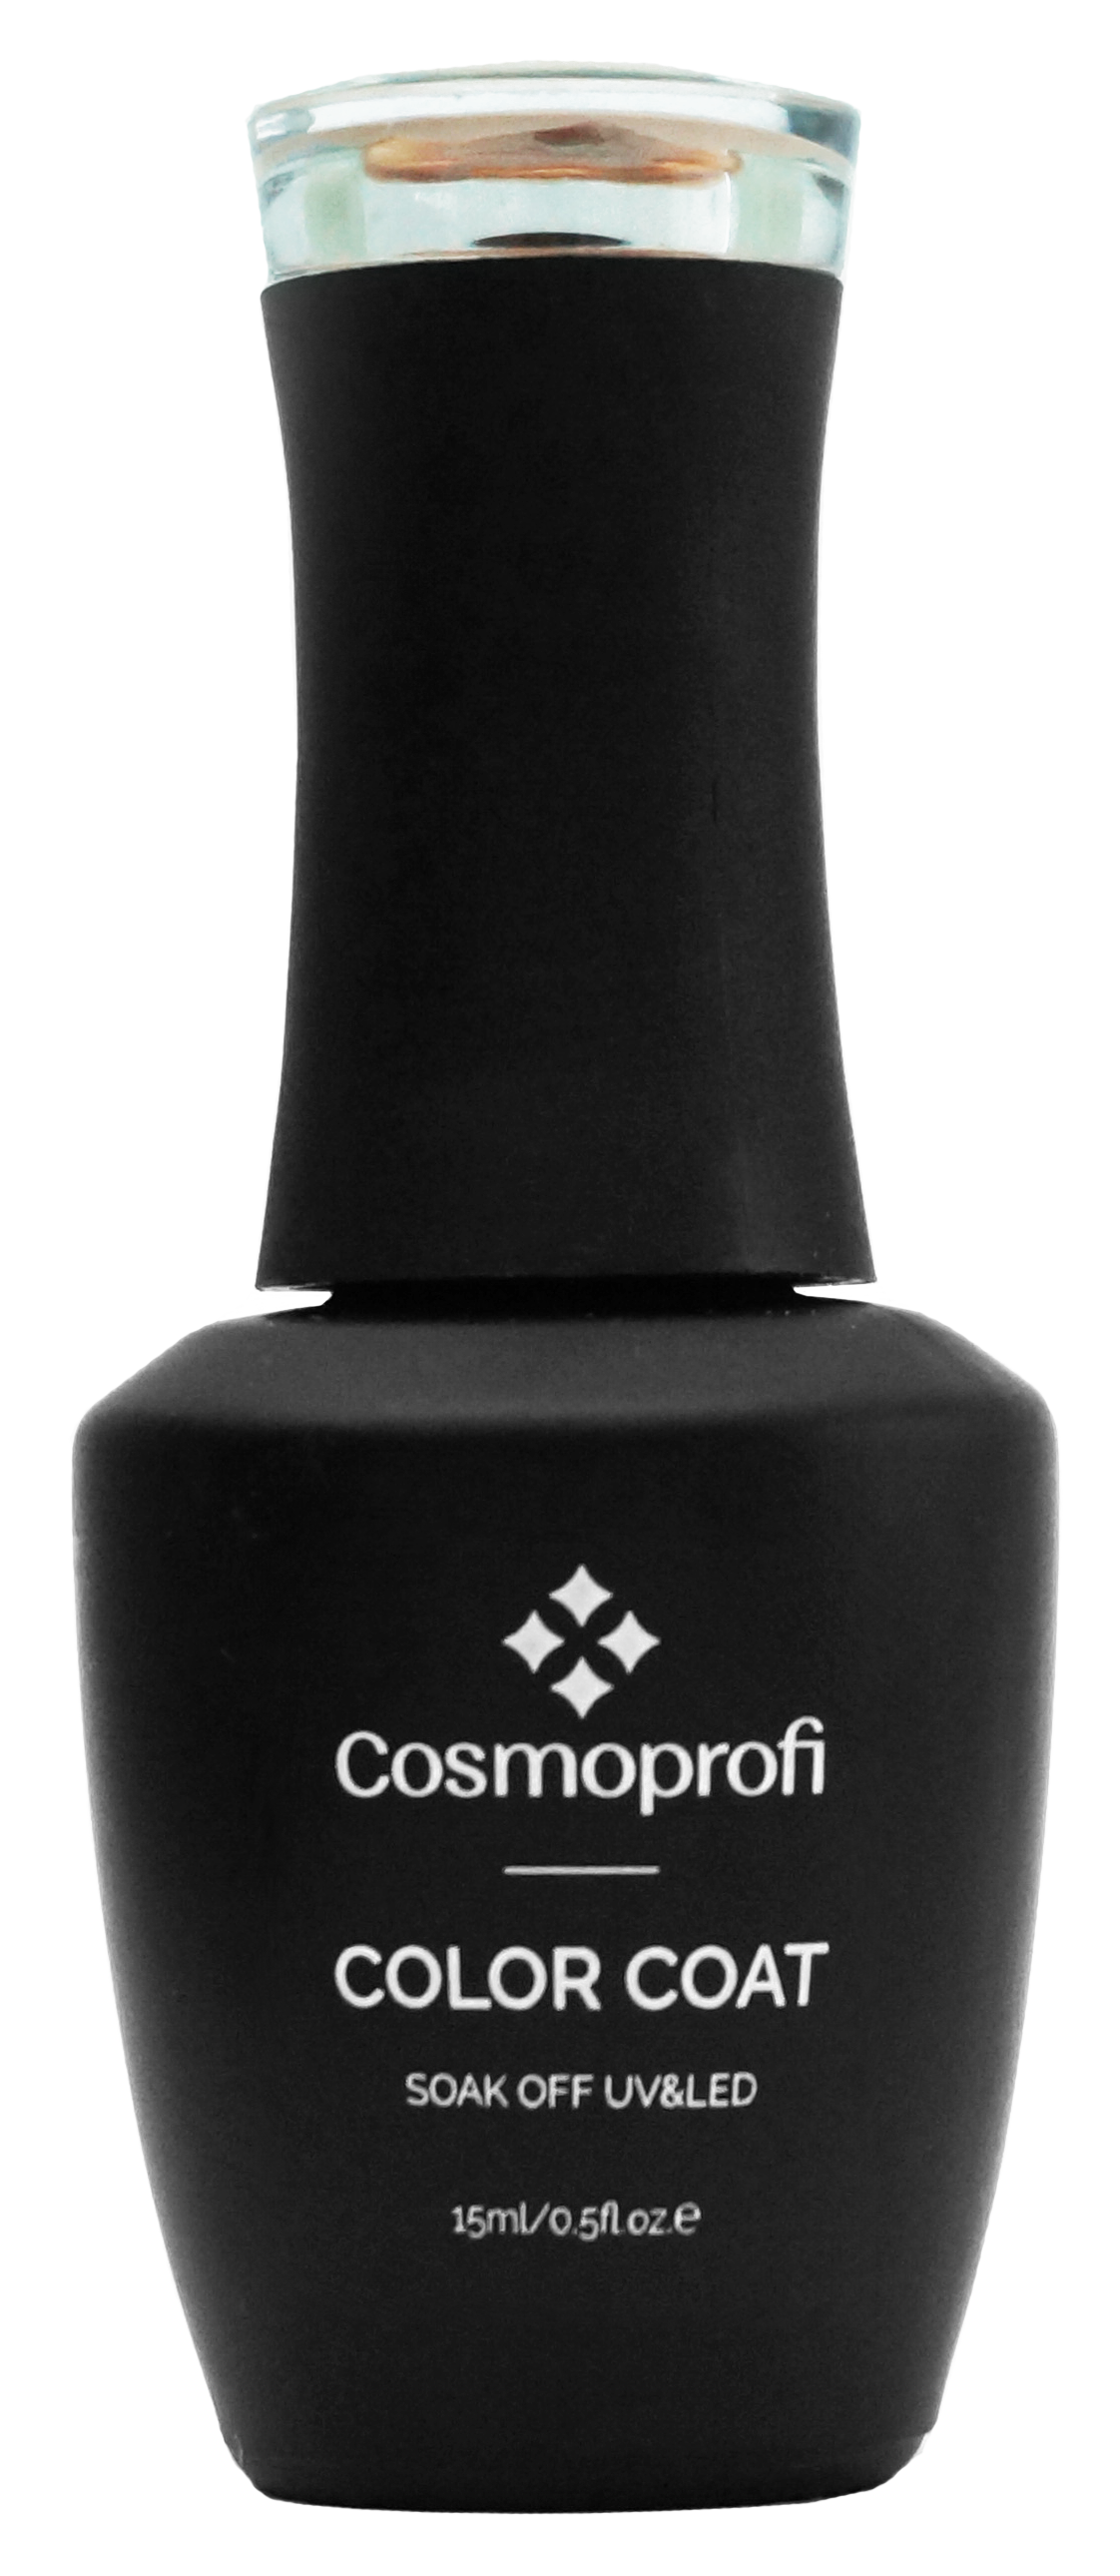 Гель-лак Cosmoprofi, Color coat № 136, 15 мл